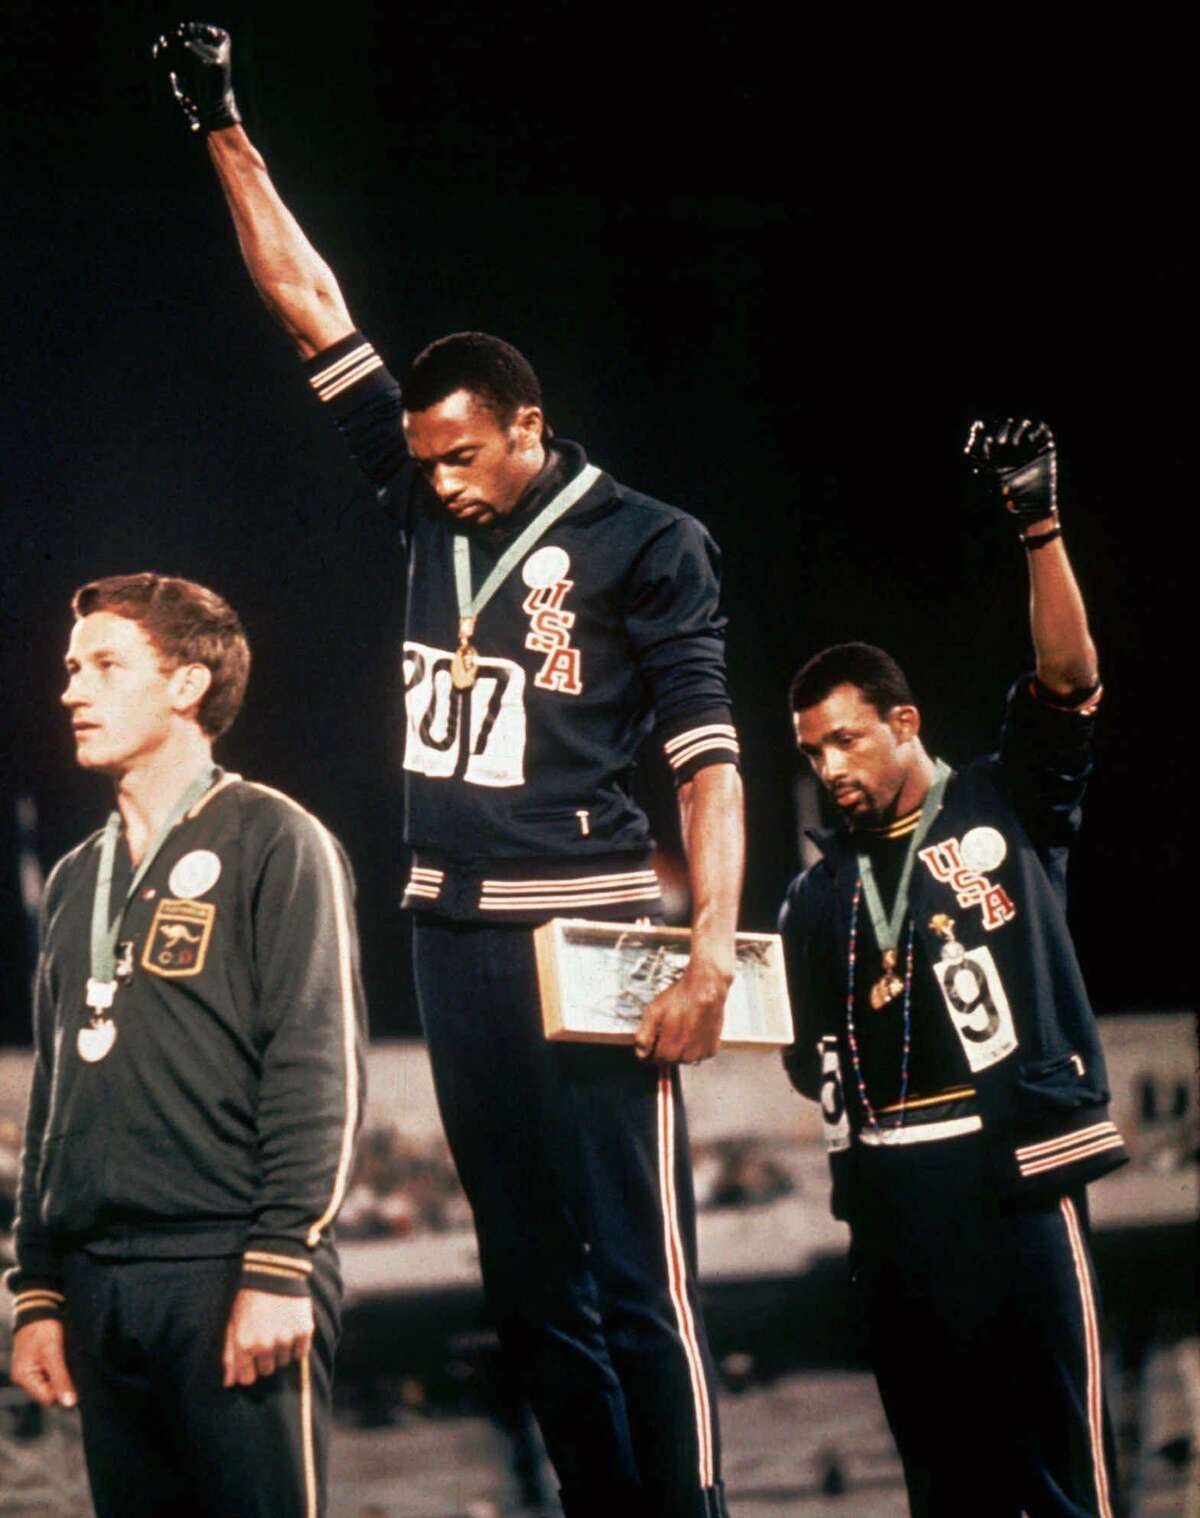 Tommie Smith, center, and John Carlos raise their firsts to protest racial injustice while on the medal podium at the 1968 Summer Olympics in Mexico City.